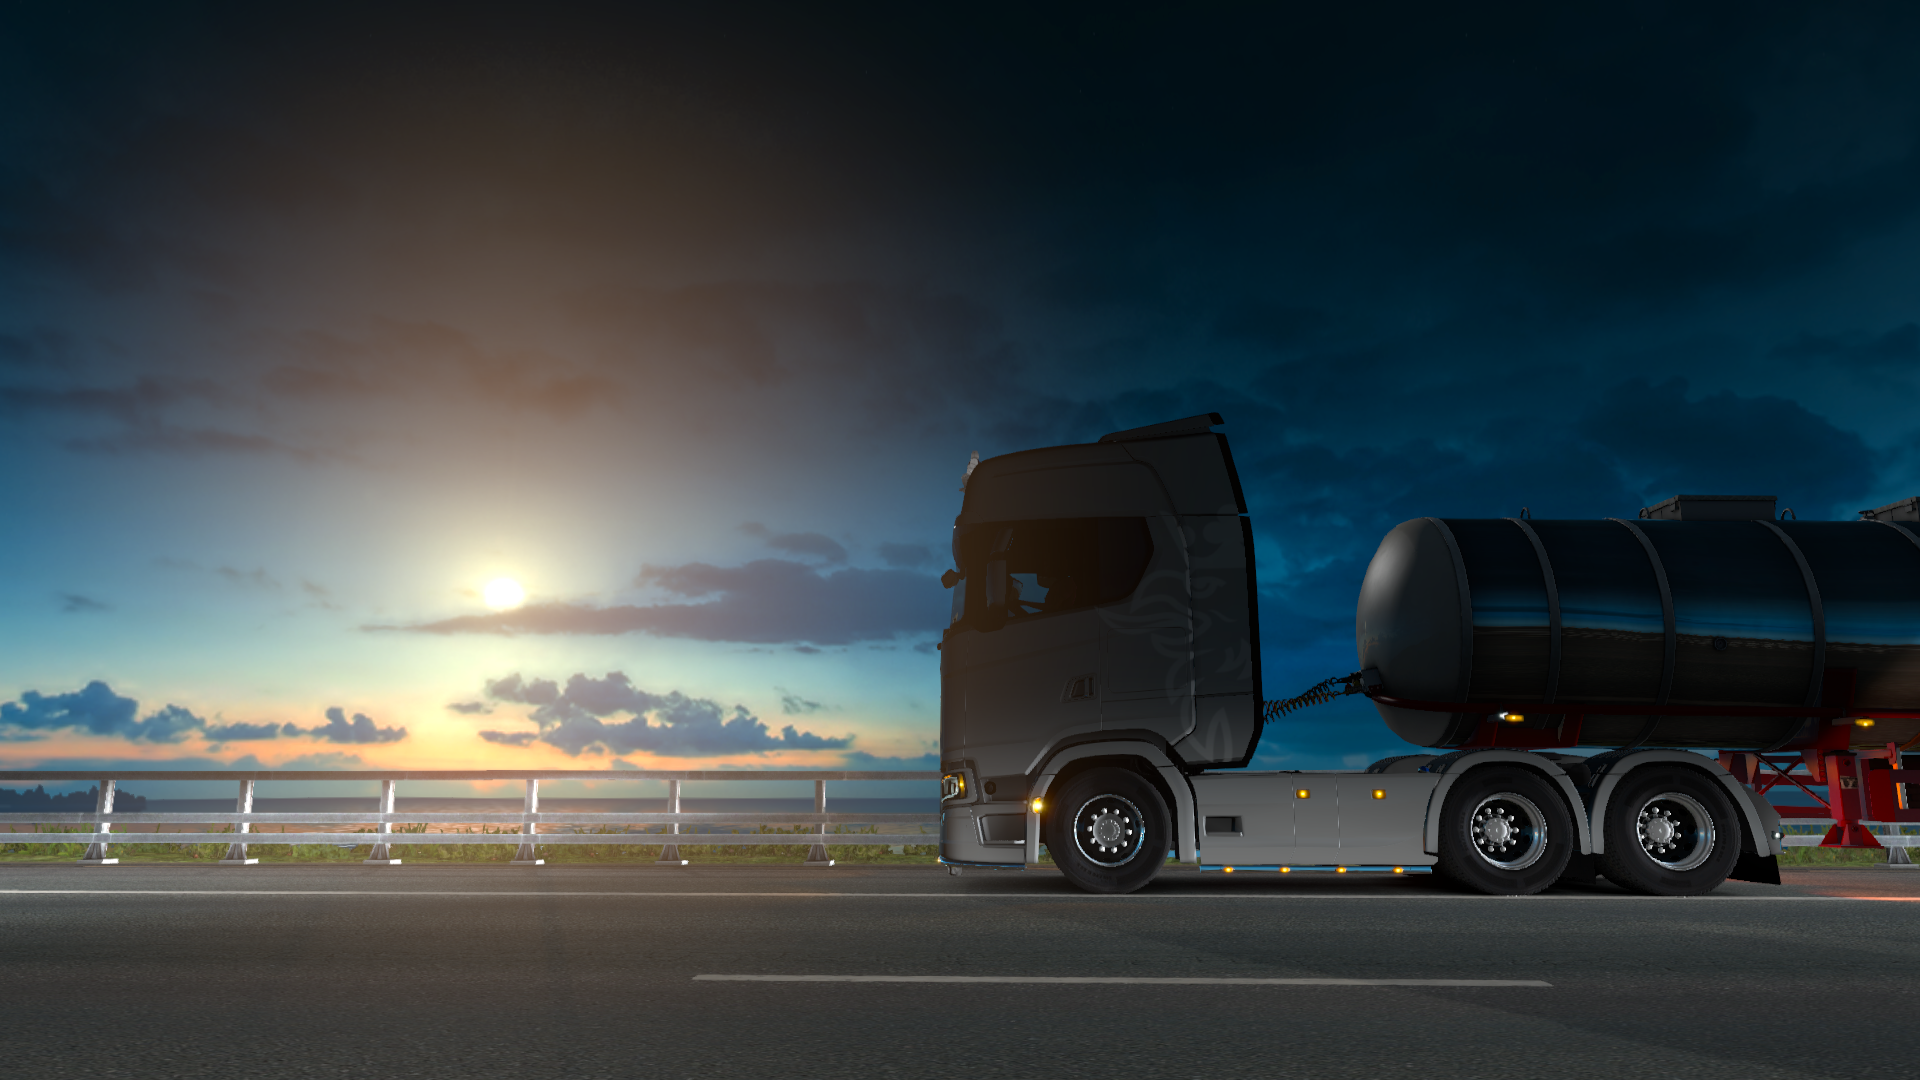 ets2_20190420_214838_00.png